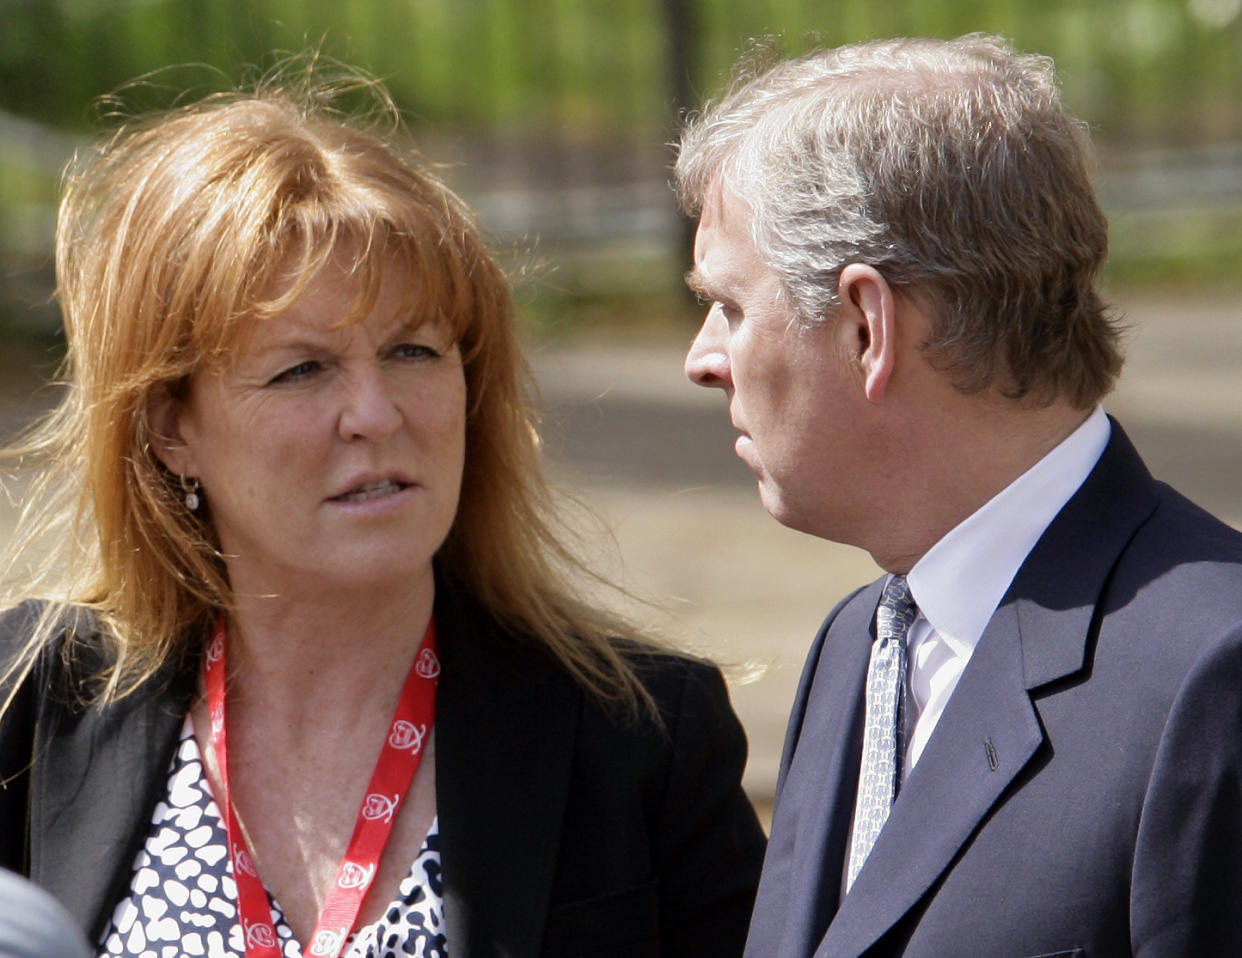 Sarah Ferguson, The Duchess of York talks with ex-husband HRH Prince Andrew, The Duke of York as they wait for daughter HRH Princess Beatrice of York to complete the Virgin London Marathon as part of the 'Caterpillar Run' Team, consisting of 32 runners tethered together on April 25, 2010